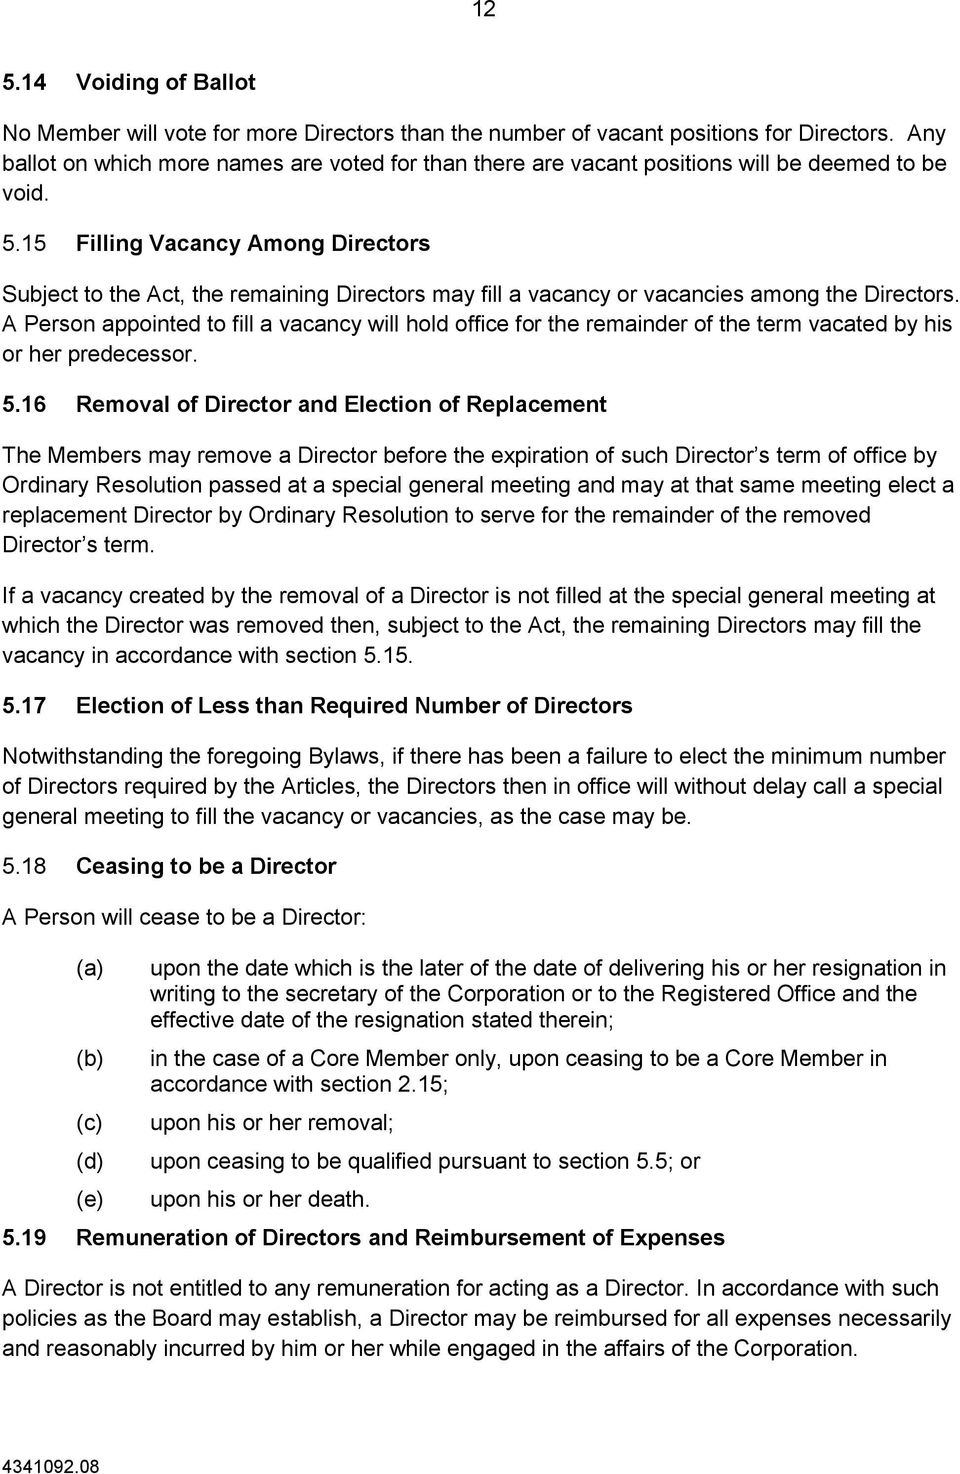 15 Filling Vacancy Among Directors Subject to the Act, the remaining Directors may fill a vacancy or vacancies among the Directors.